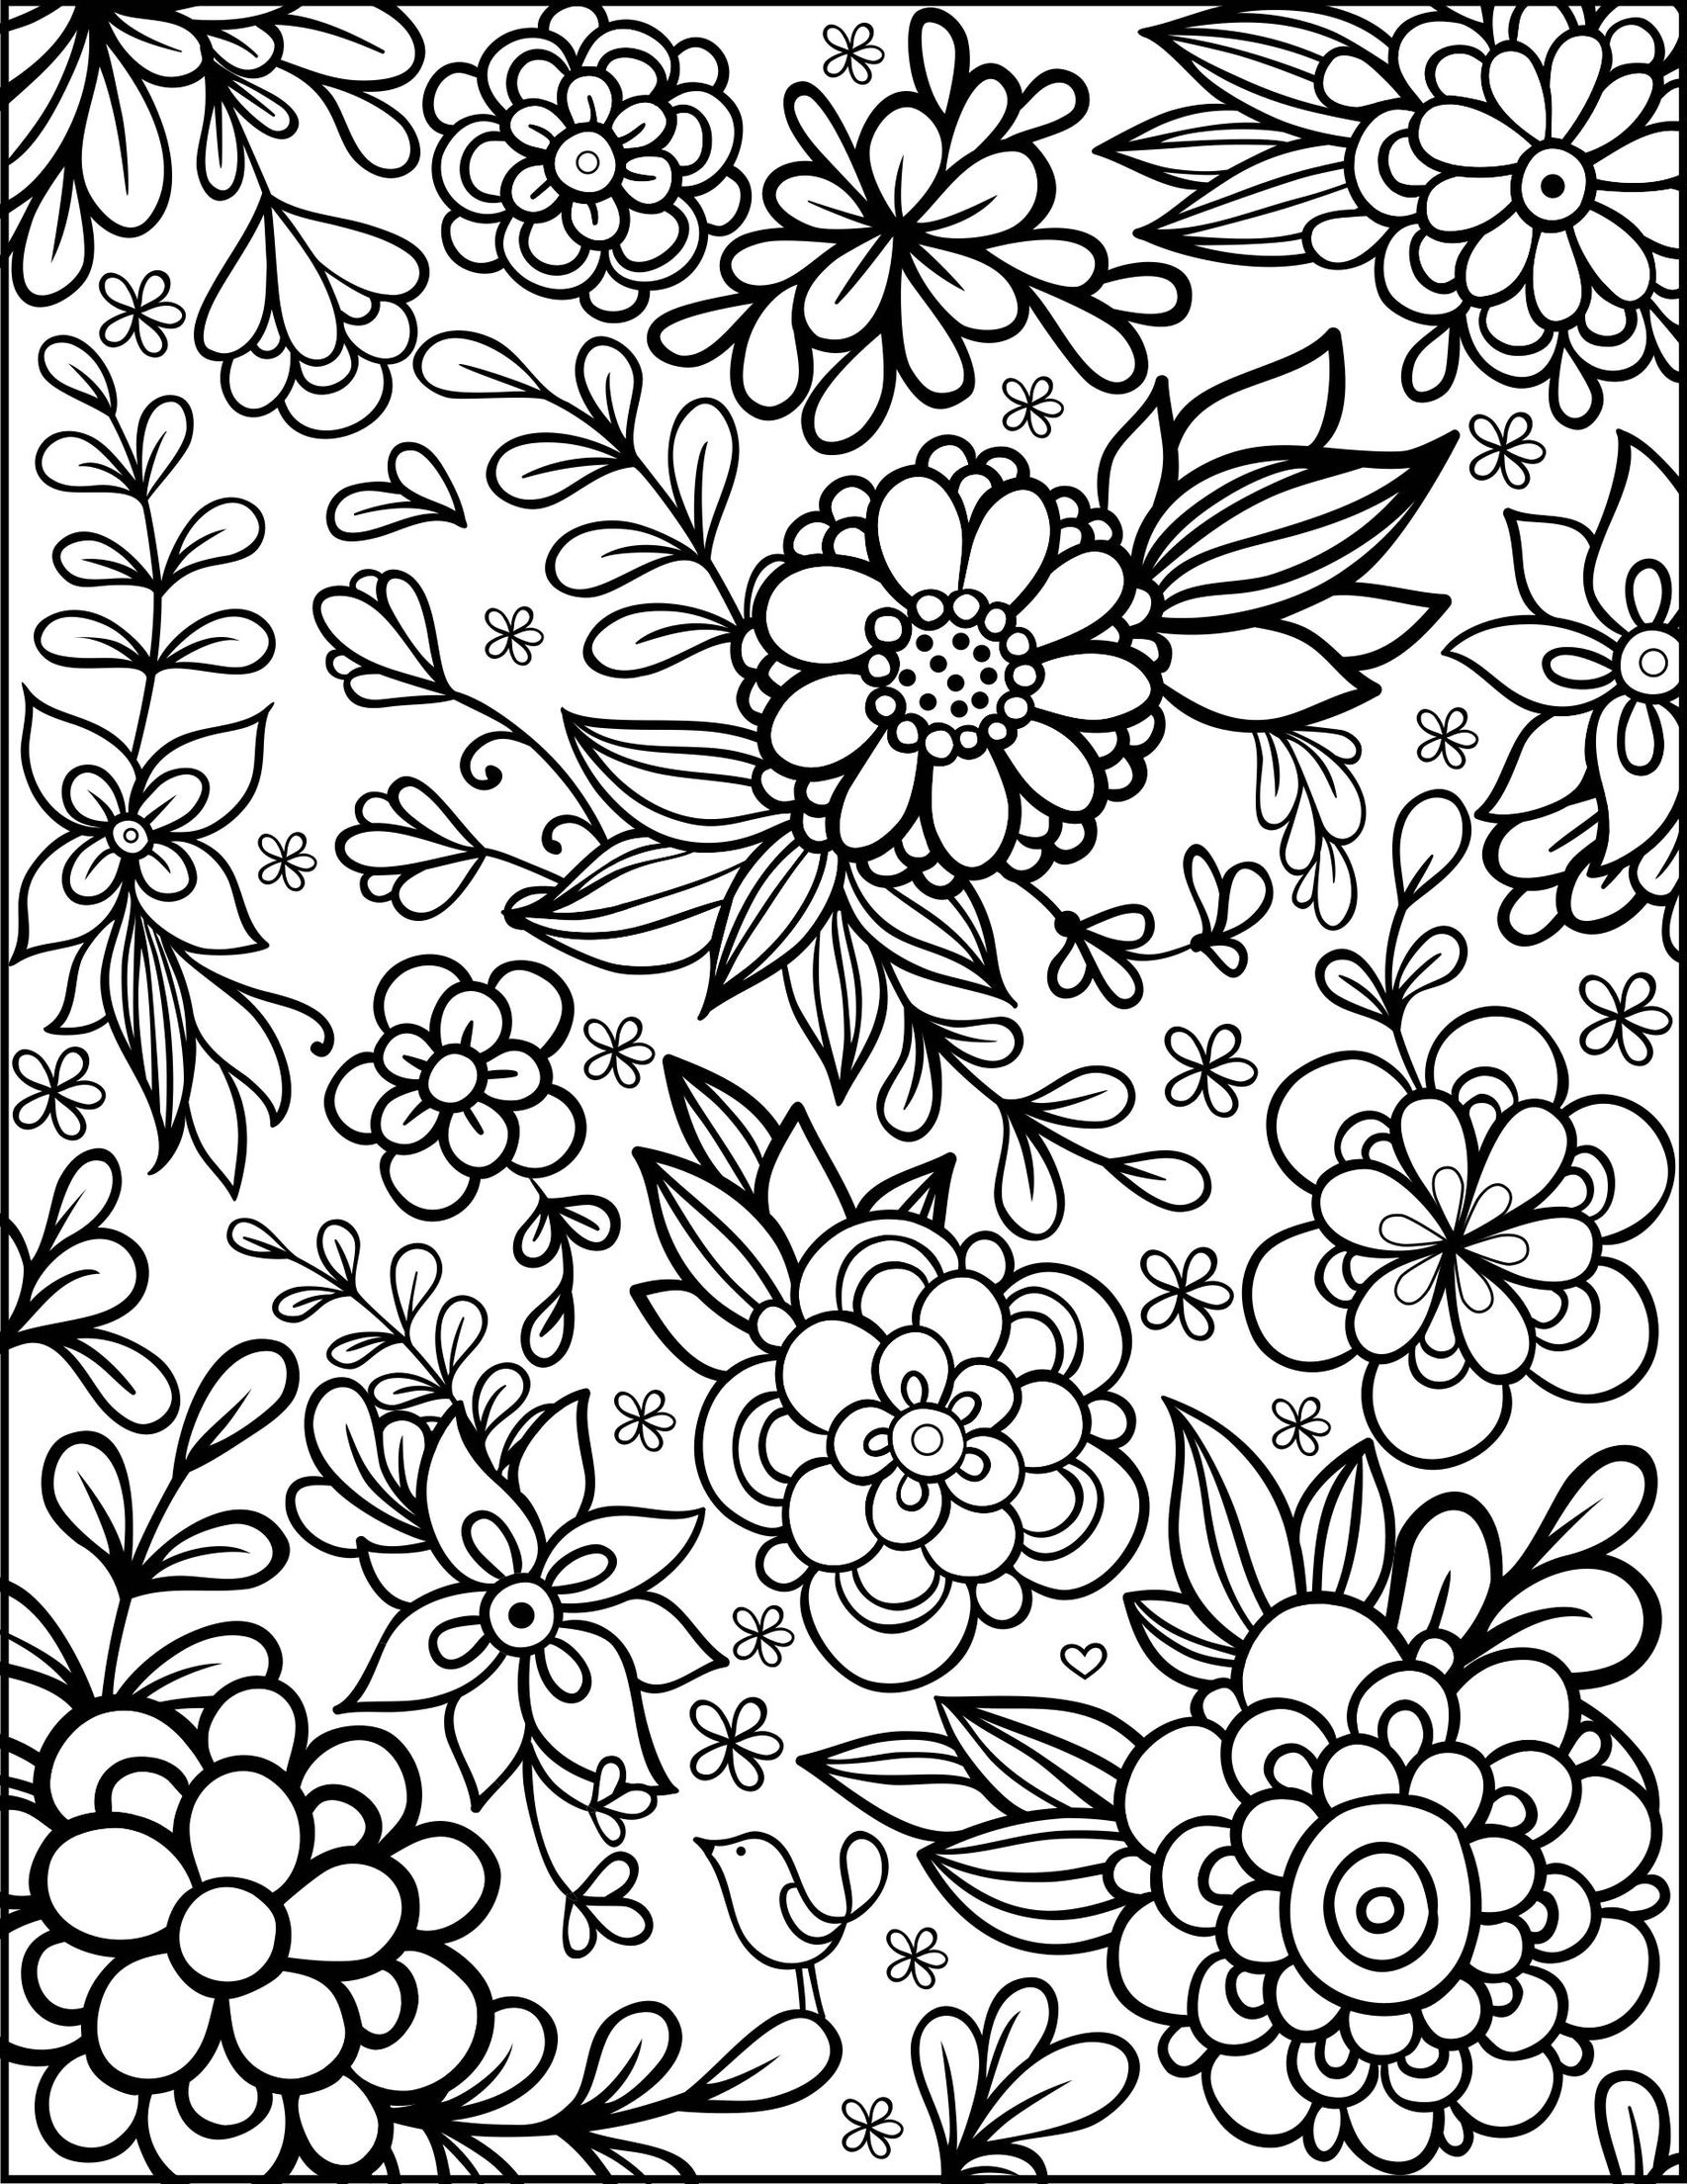 detailed flower coloring pages get this detailed flower coloring pages for adults flower pages coloring detailed